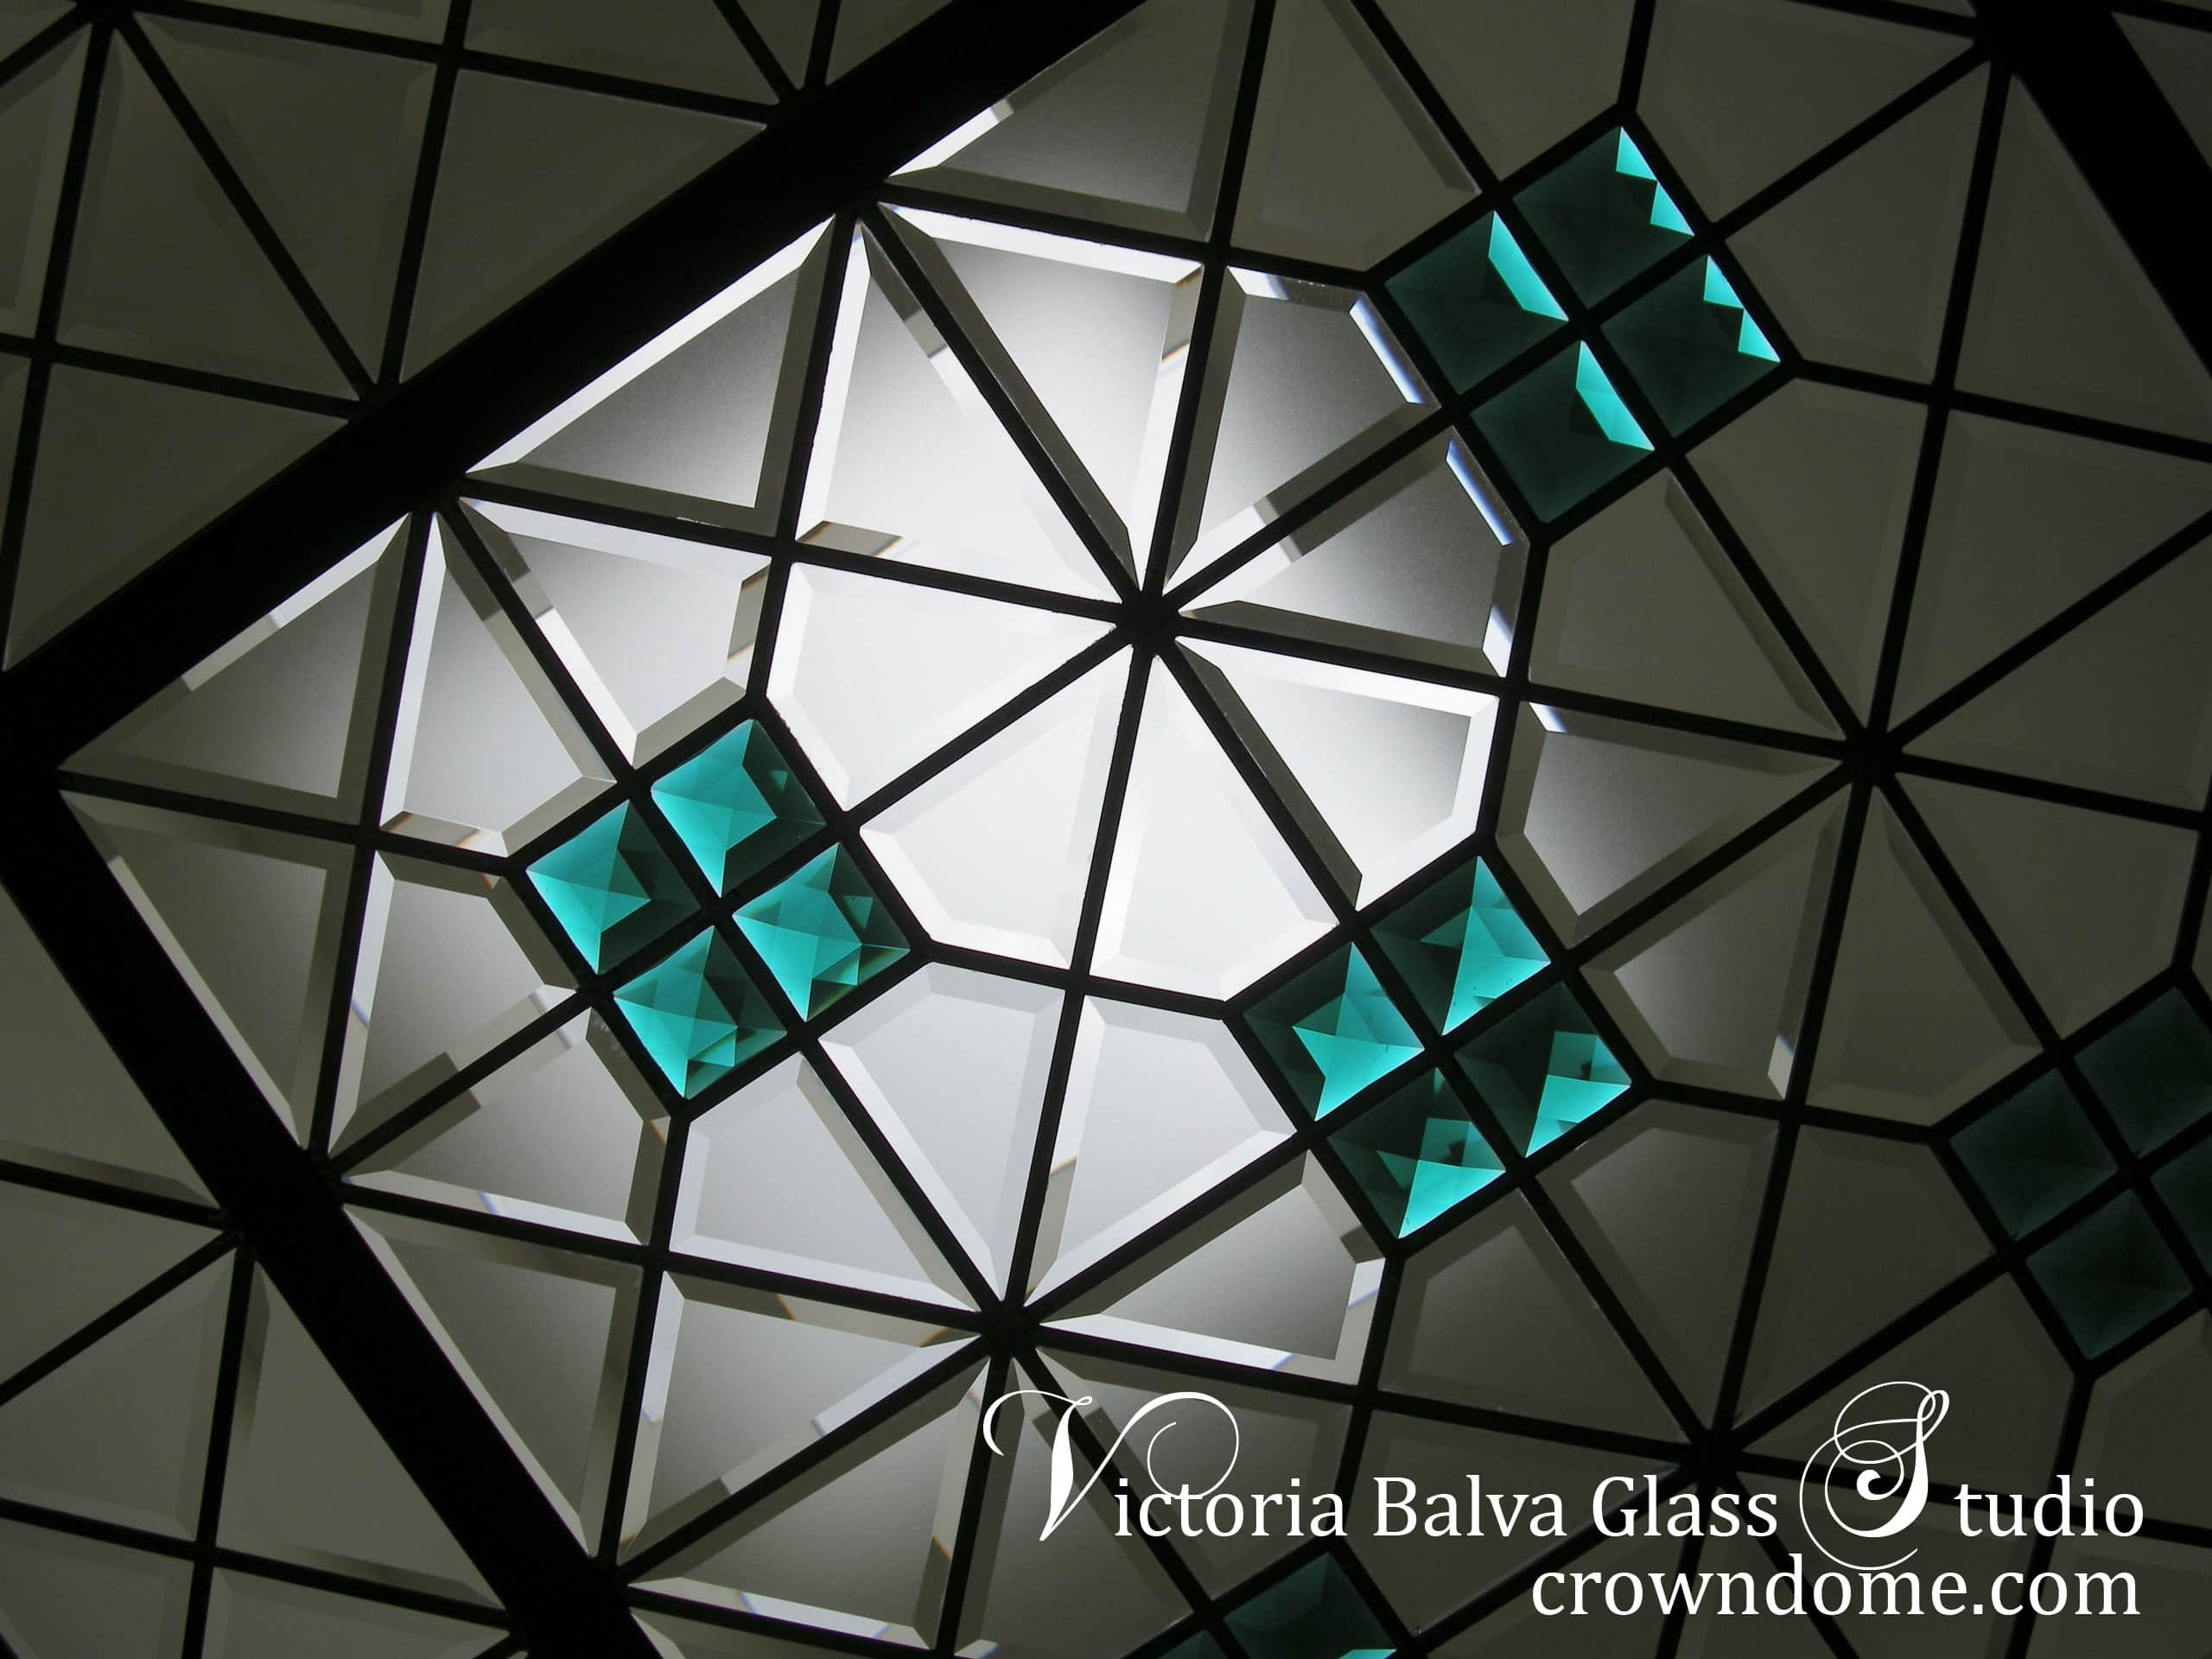 Extraordinary stained beveled leaded glass skylight ceiling with emerald accent jewels and colored beveled glass for a bathroom of a custom built residence. Simple geometric stained leaded glass design with custom beveled glass and large emerald jewels by stained glass artist Victoria Balva